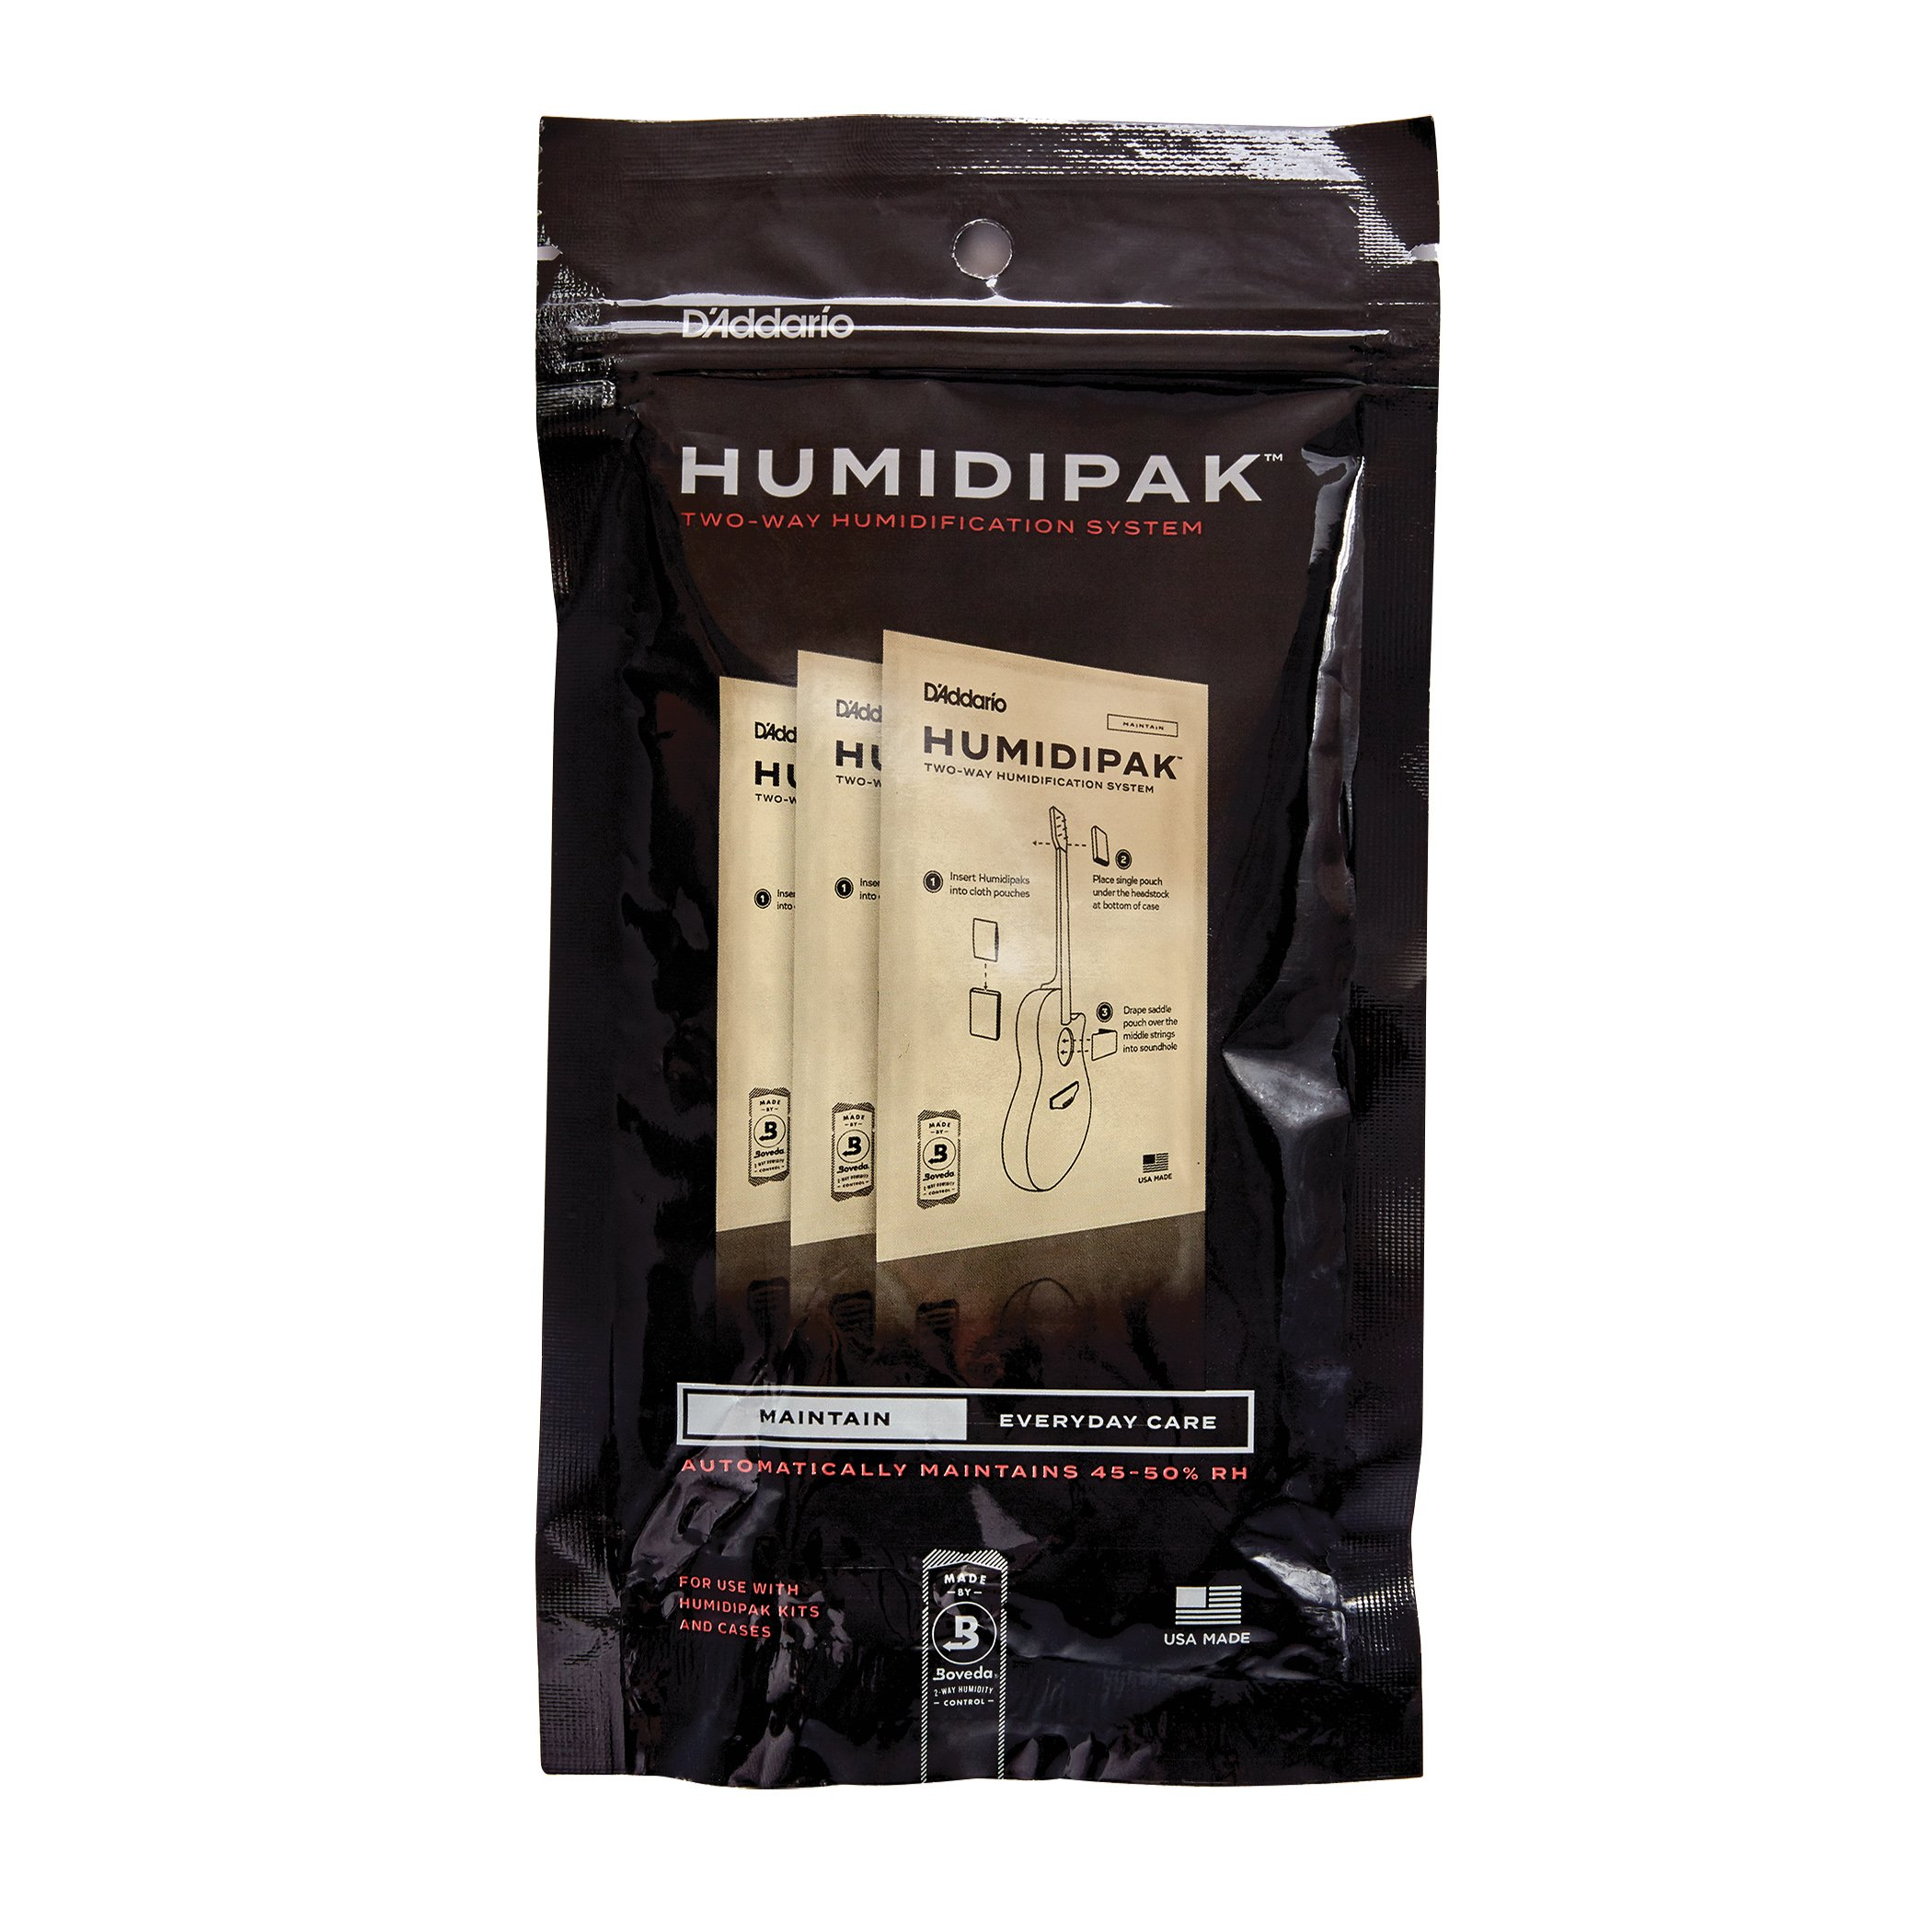 Planet Waves PW-HPRP-03 D'Addario Two Way Humidification System Replacement Packets, 3-pack by D'Addario Accessories